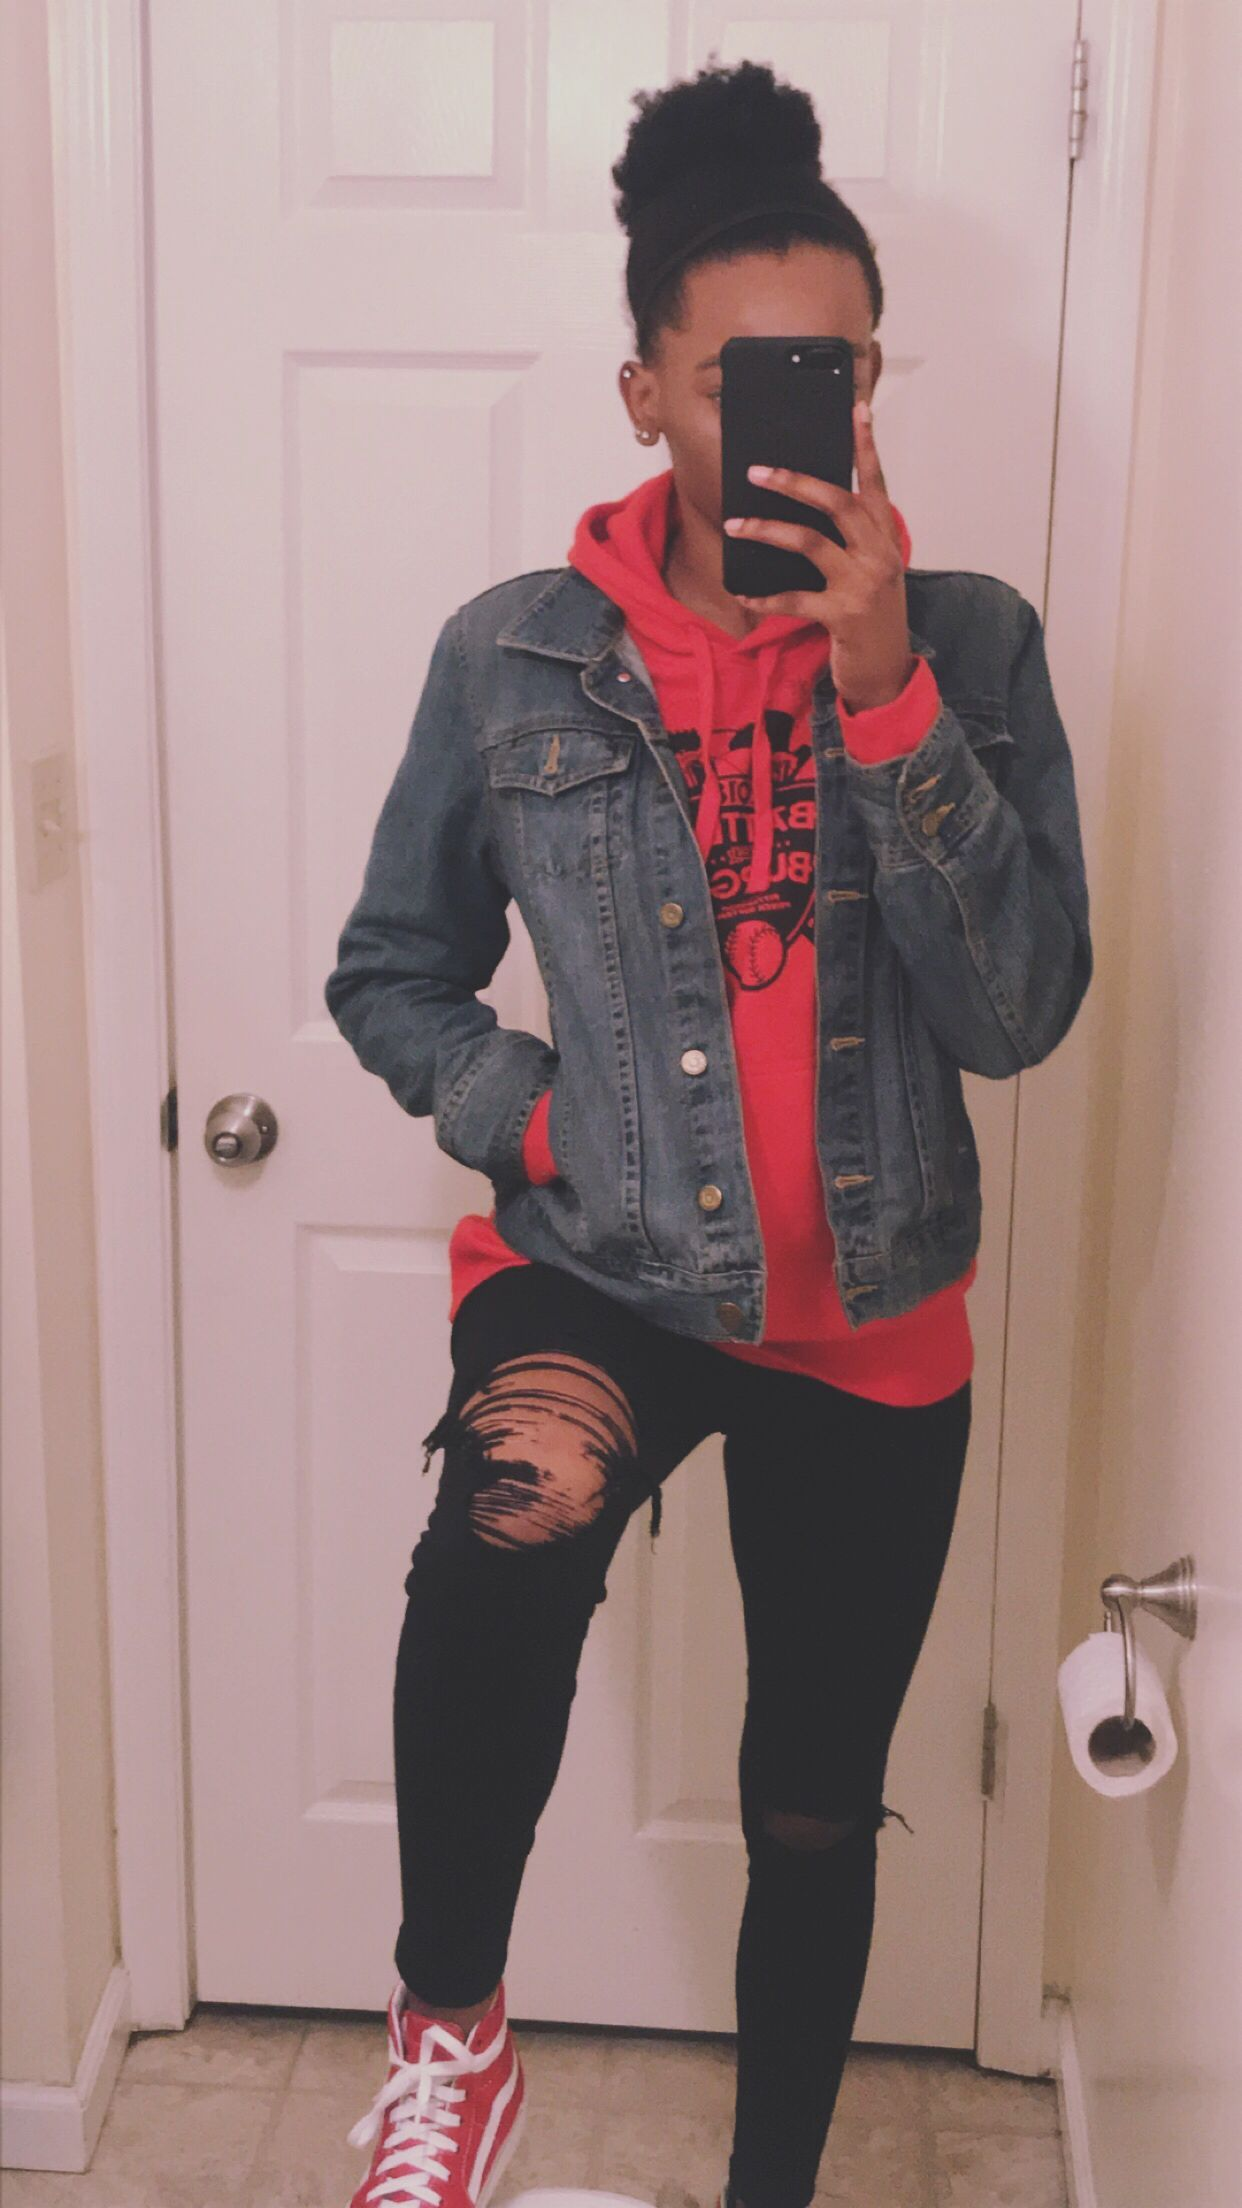 Jean Jacket Over Sweatshirt Black Ripped Jeans And Red High Top Vans Outfit Women Jean Jackets In 2020 High Top Vans Outfit Black Ripped Jeans Ripped Jeans Outfit